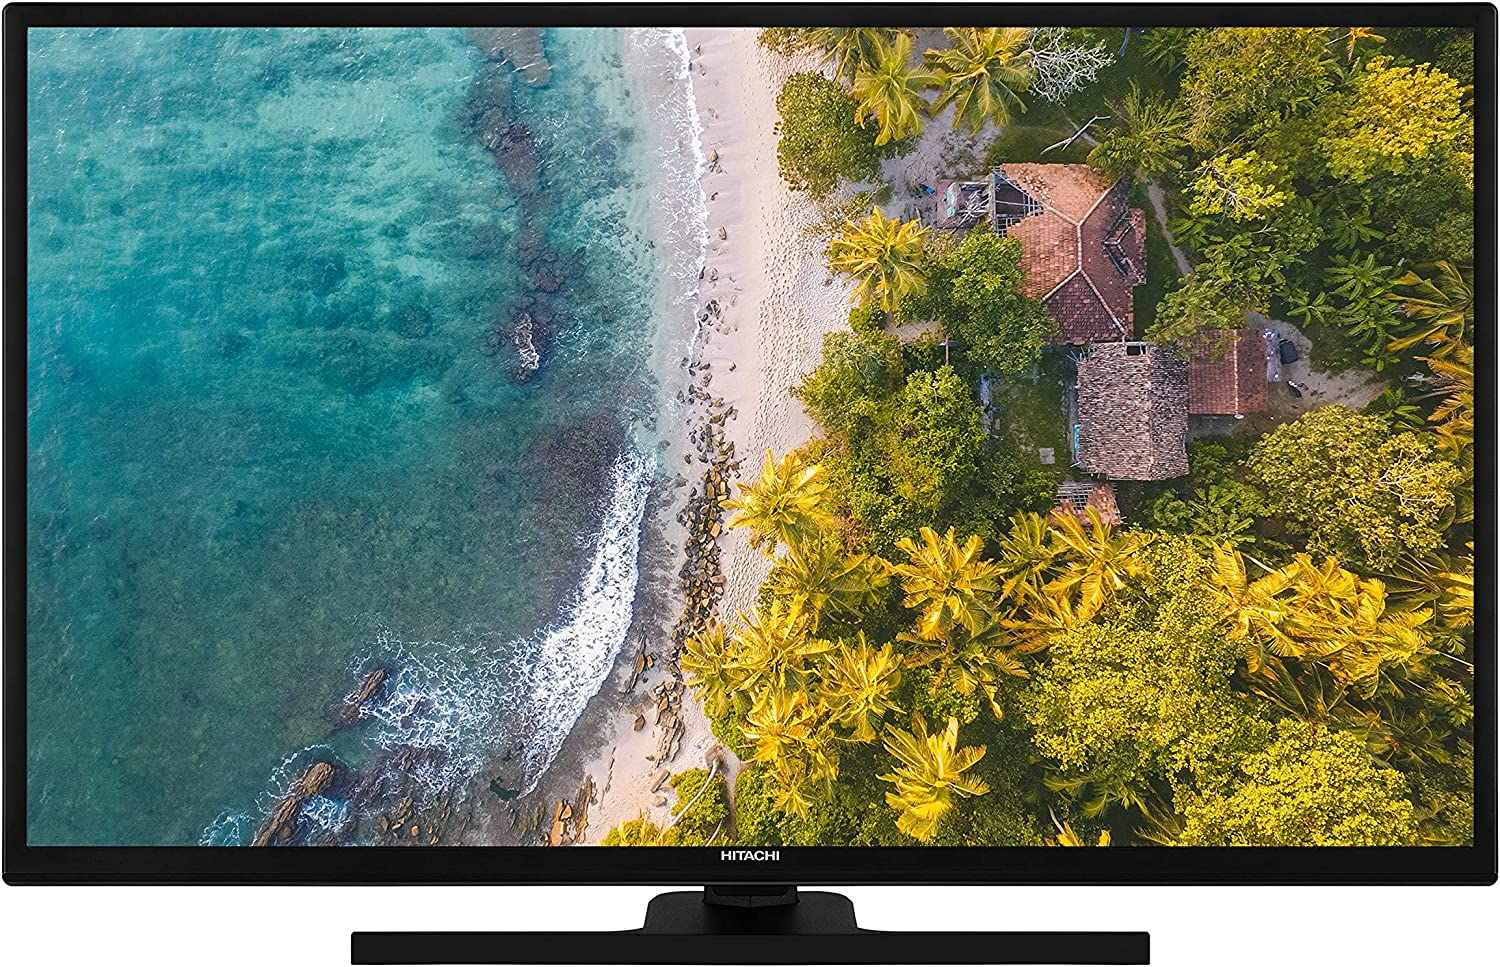 Hitachi HT39F4100C - Televisor de hotel (98 cm/39 pulgadas, Smart TV, incluye Prime Video/Netflix/YouTube, Full HD, Bluetooth, Works with Alexa, sintonizador triple): Amazon.es: Electrónica